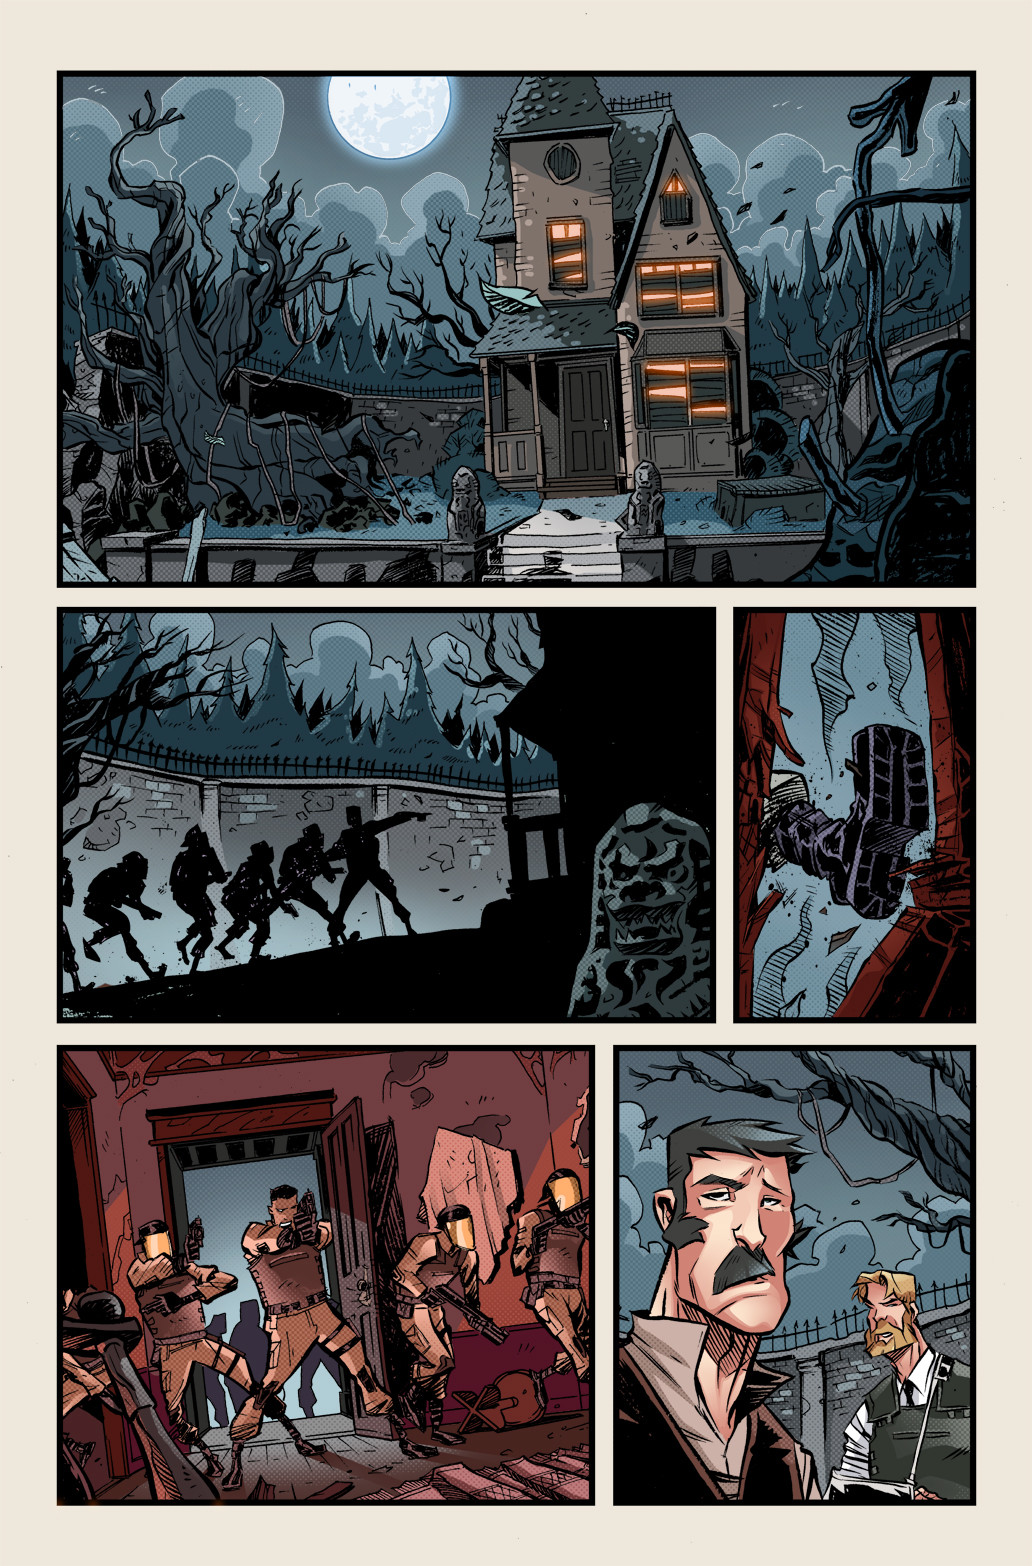 GONERS - #3, page 12